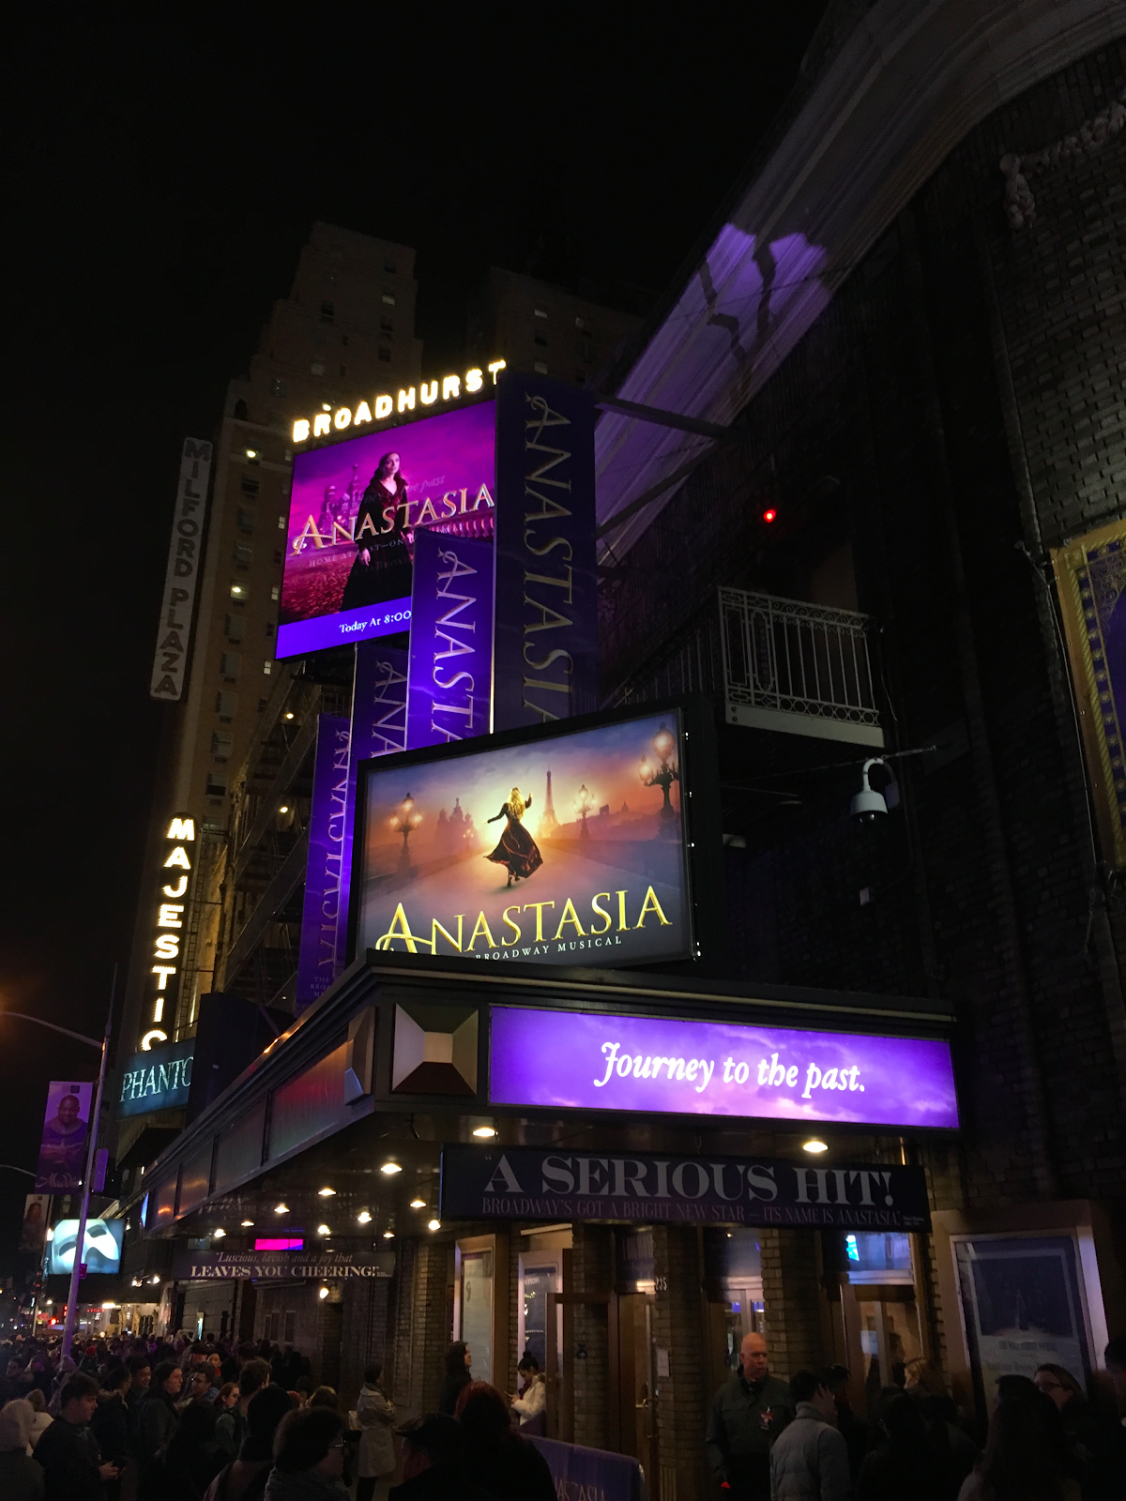 The Broadhurst Theater, where the musical 'Anastasia', based on a movie of the same name, is performed.